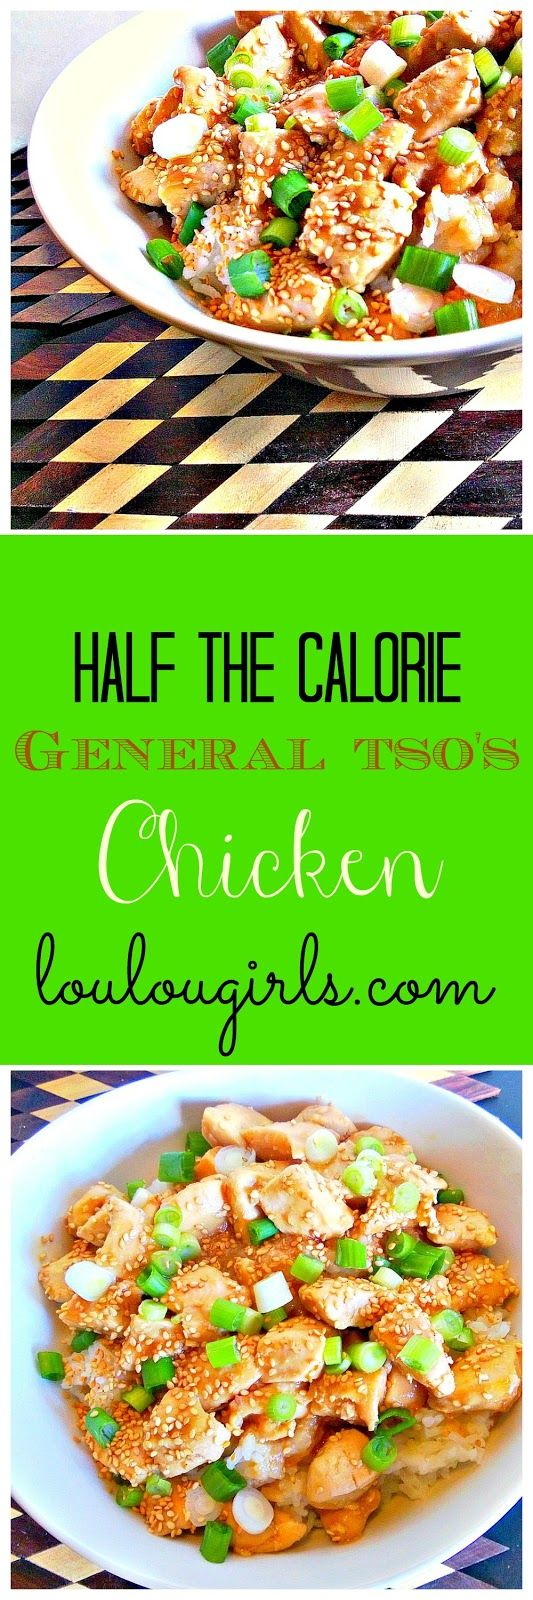 Lou Lou Girls : Half The Calorie General Tso's Chicken